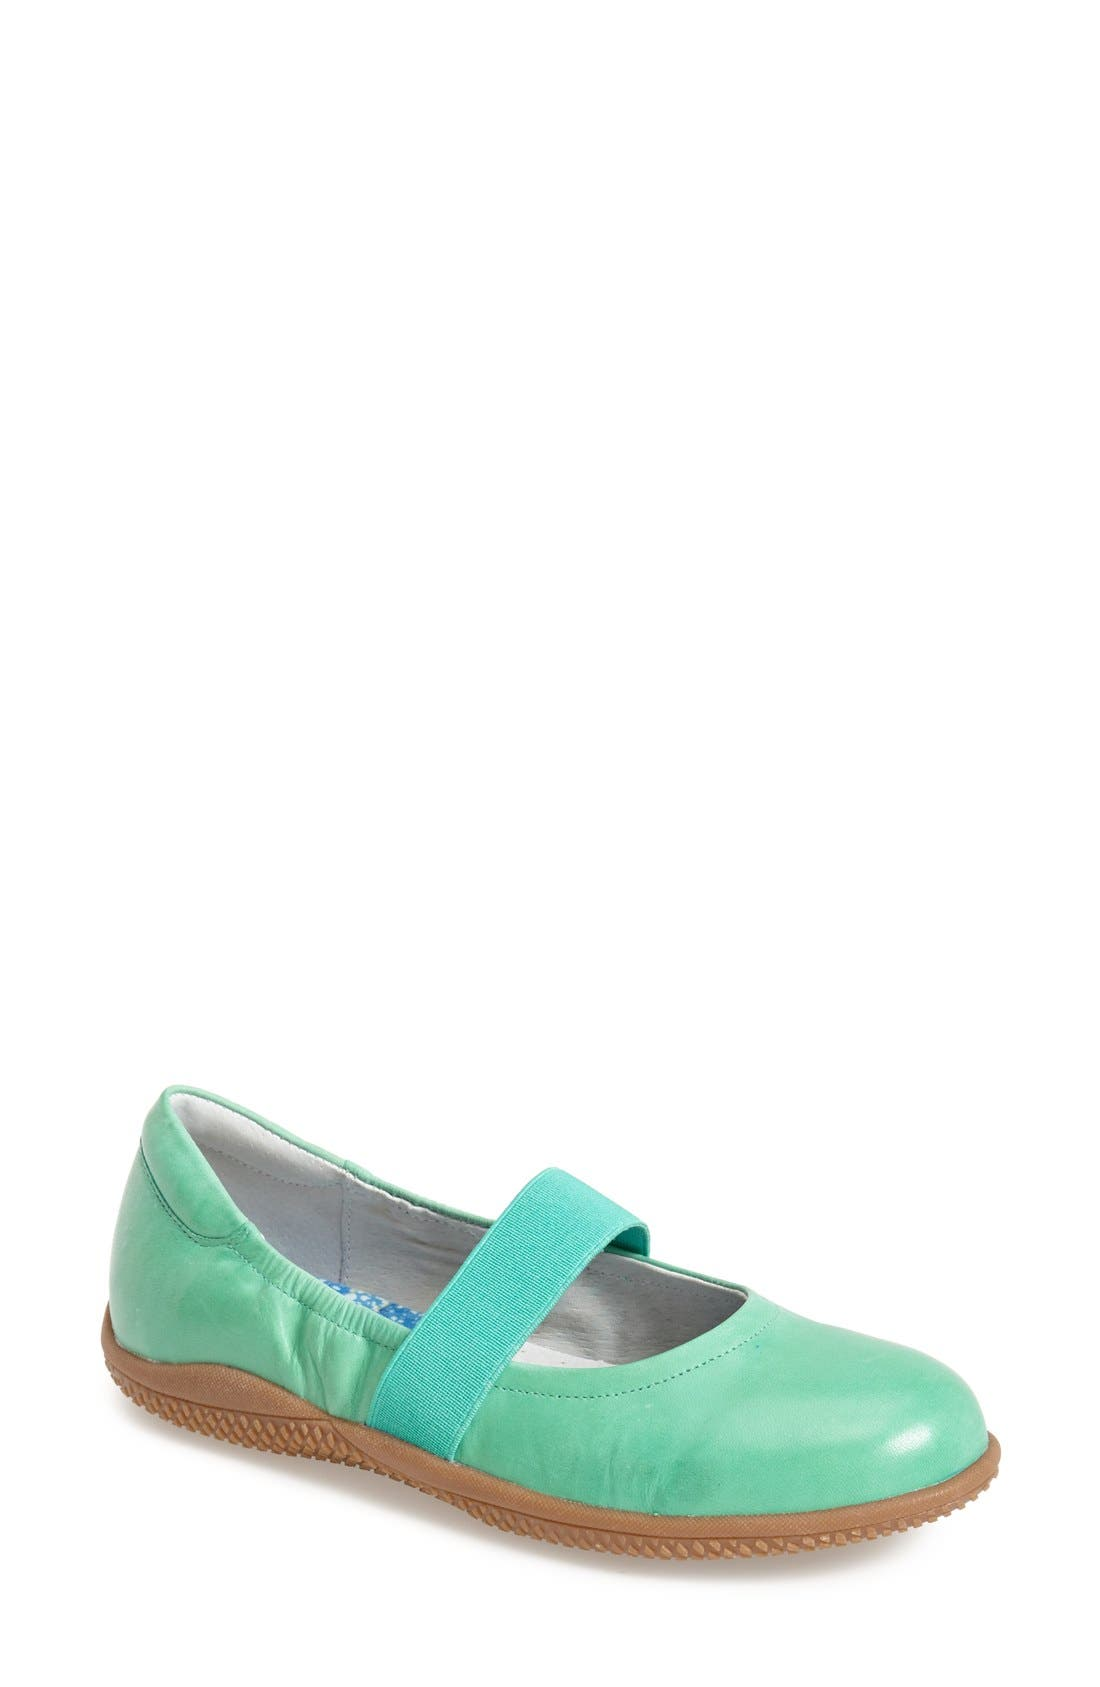 'High Point' Mary Jane Flat,                         Main,                         color, Jade